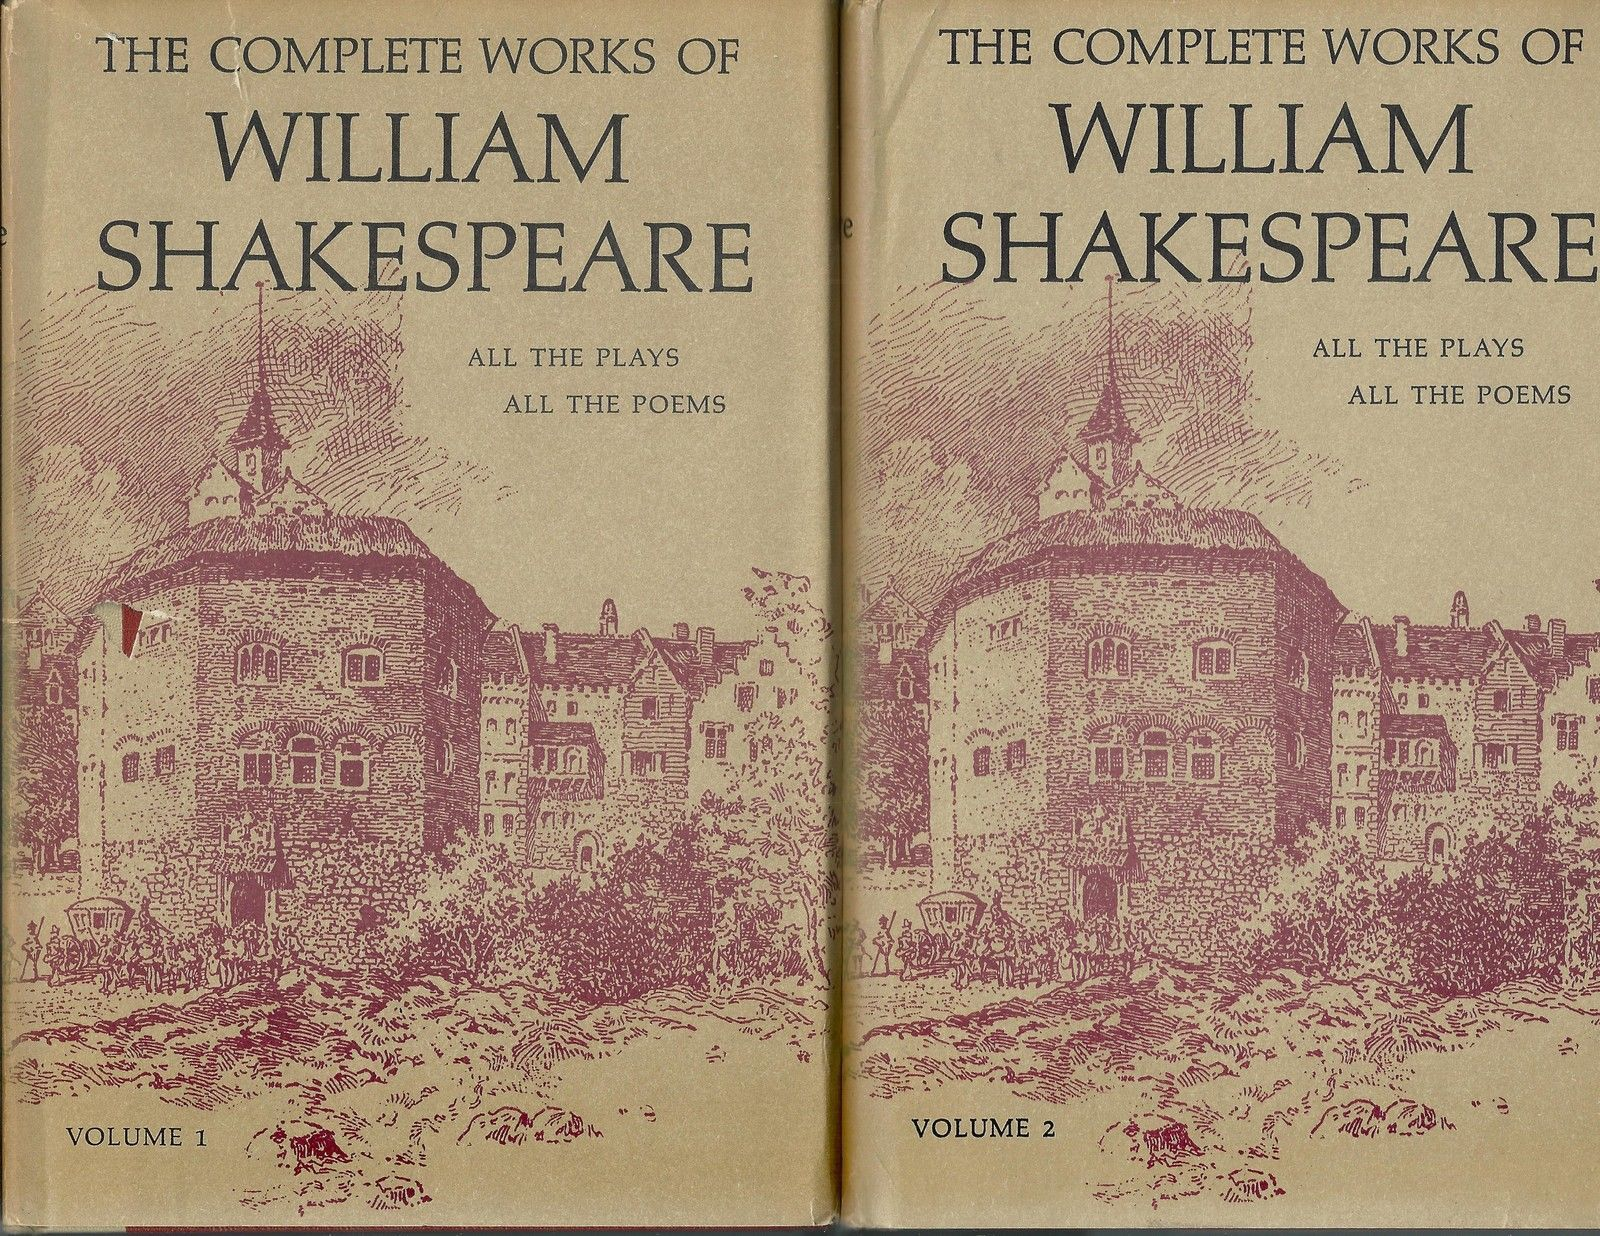 a comparison of the works by robert frost and william shakespeare Only five works can be traced to shakespeare: versions of sonnets 138 and 144, and three poems presumably taken from a quarto edition of love's labour's lost thomas heywood actually complained about a later reprinting of the work in which his poetry was published but still credited to shakespeare.